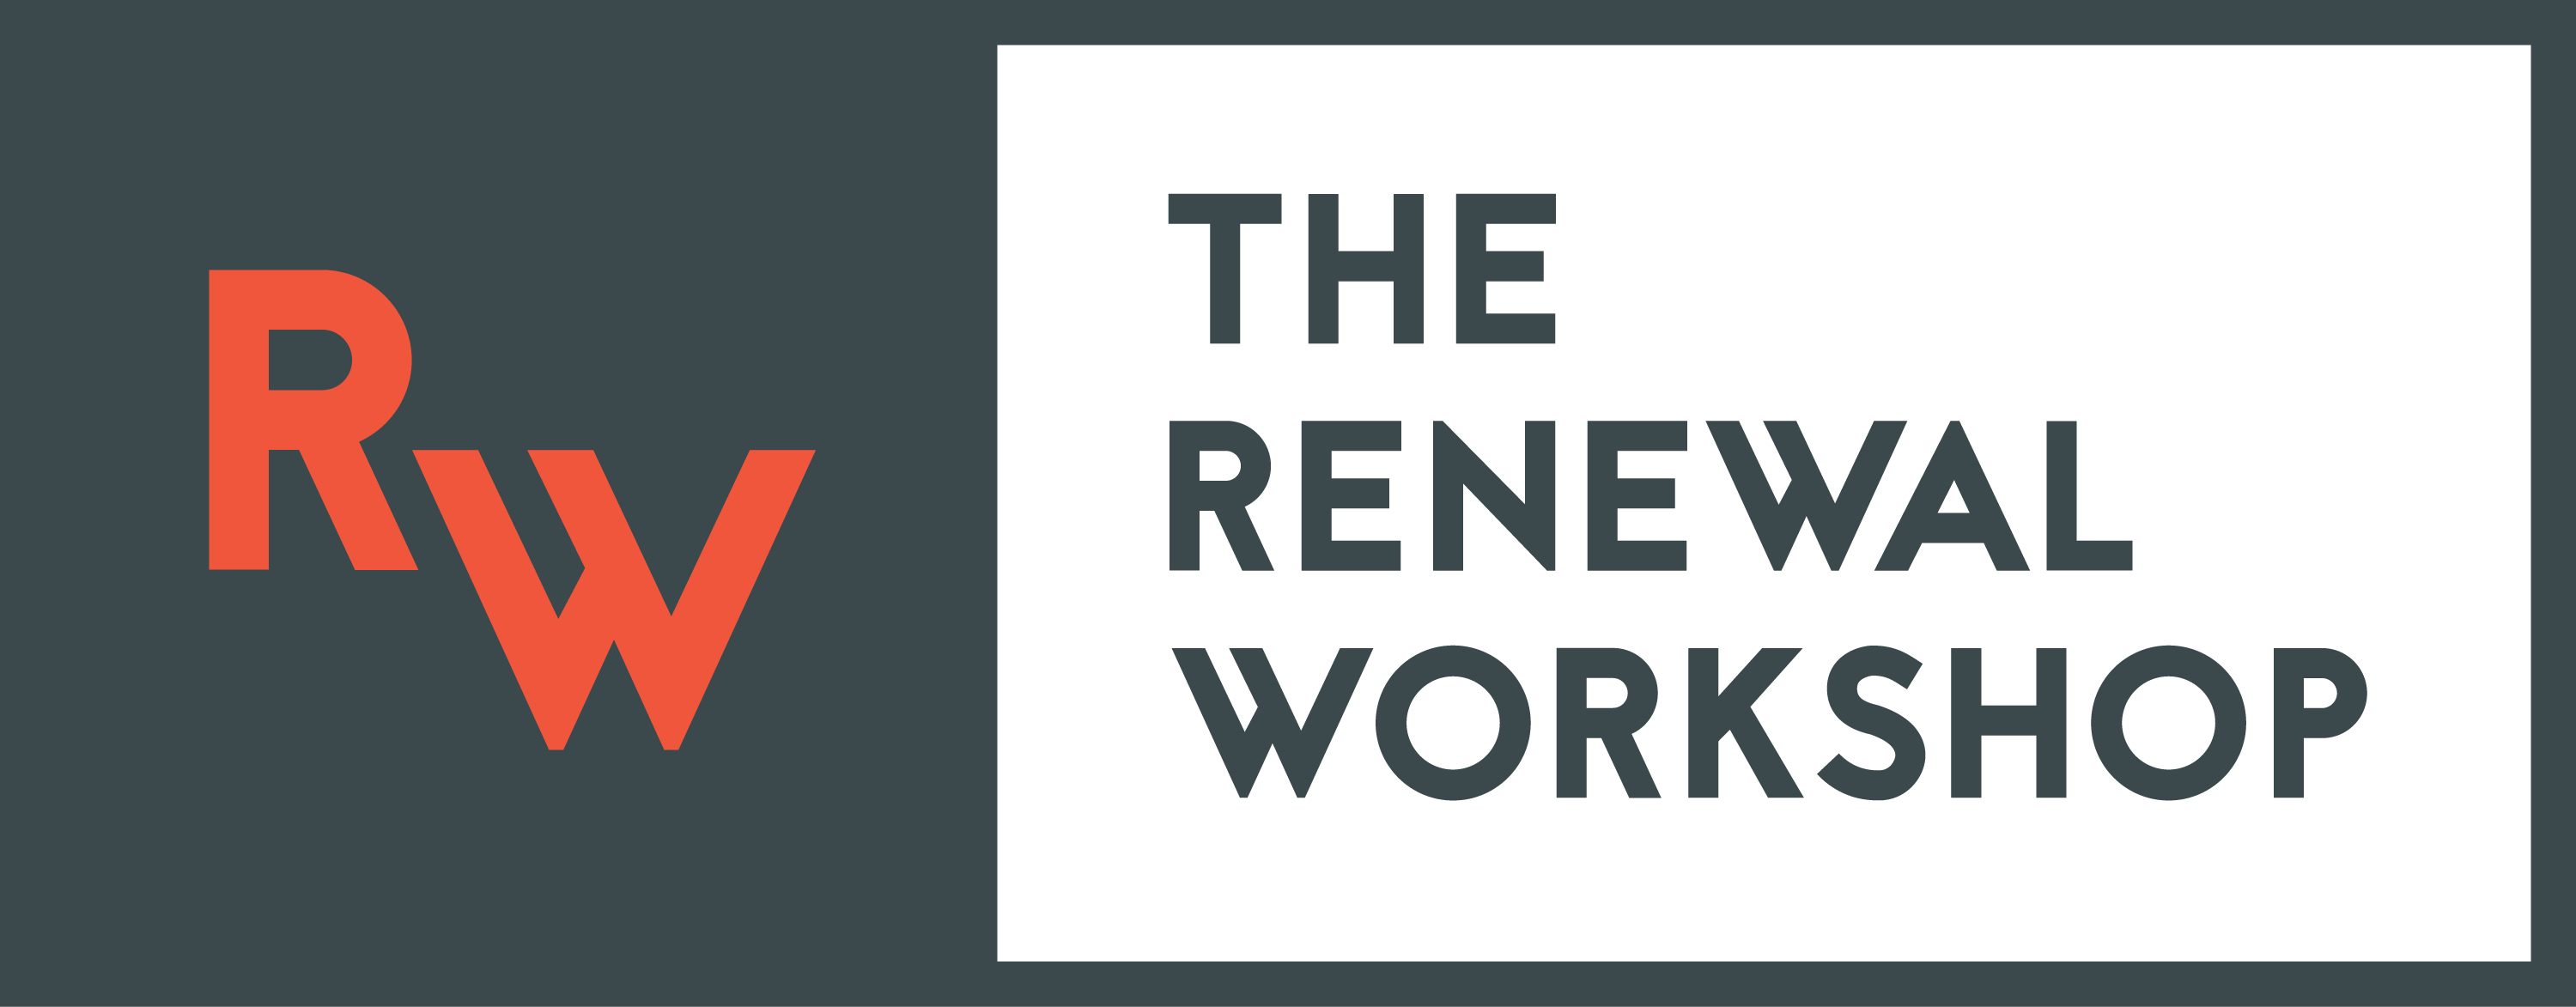 Renewal Workshop white on gray logo